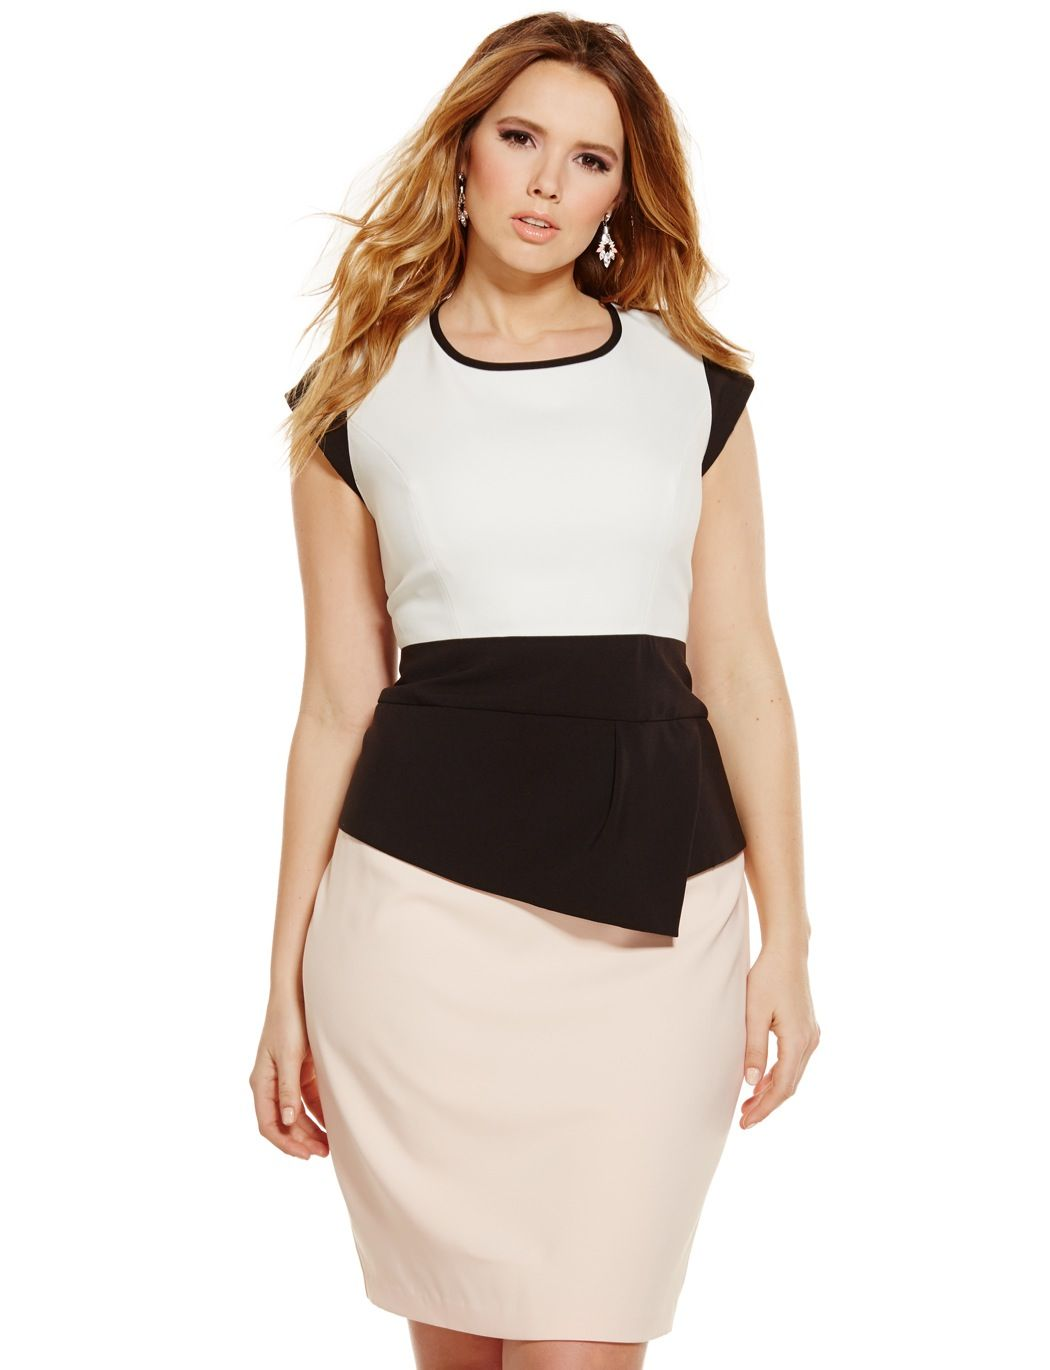 Colorblock Asymmetrical Peplum Sheath Dress | Women\'s Plus Size ...